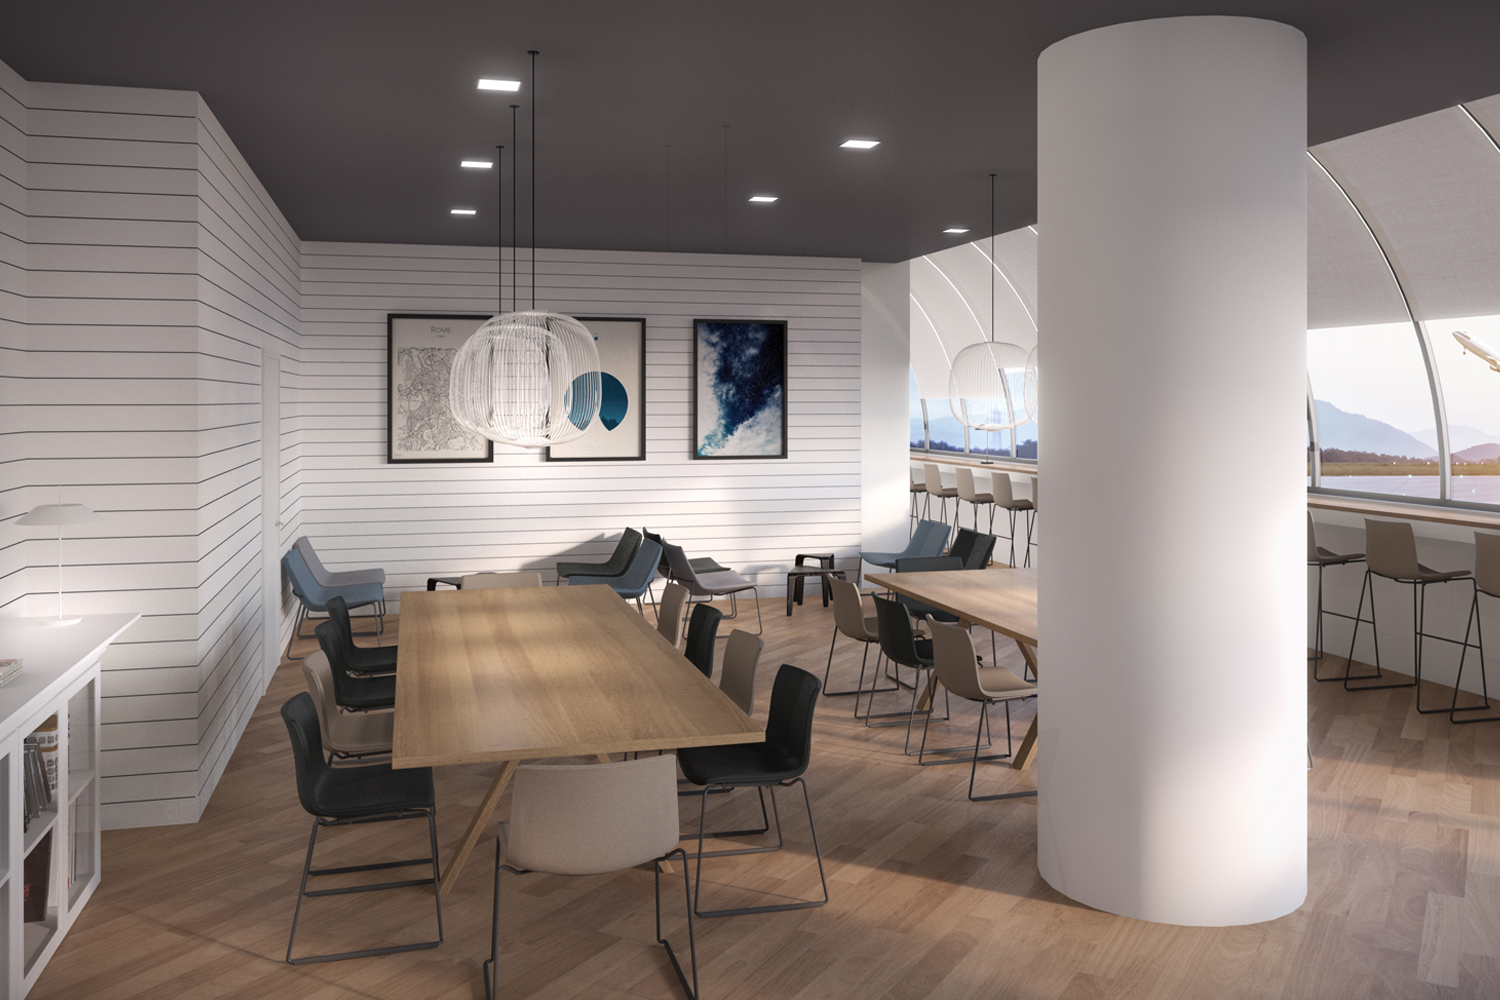 2-AP-PASSENGER-LOUNGE-AVIA-FCO-AIRPORT-UP-TO-YOU-STUDIO